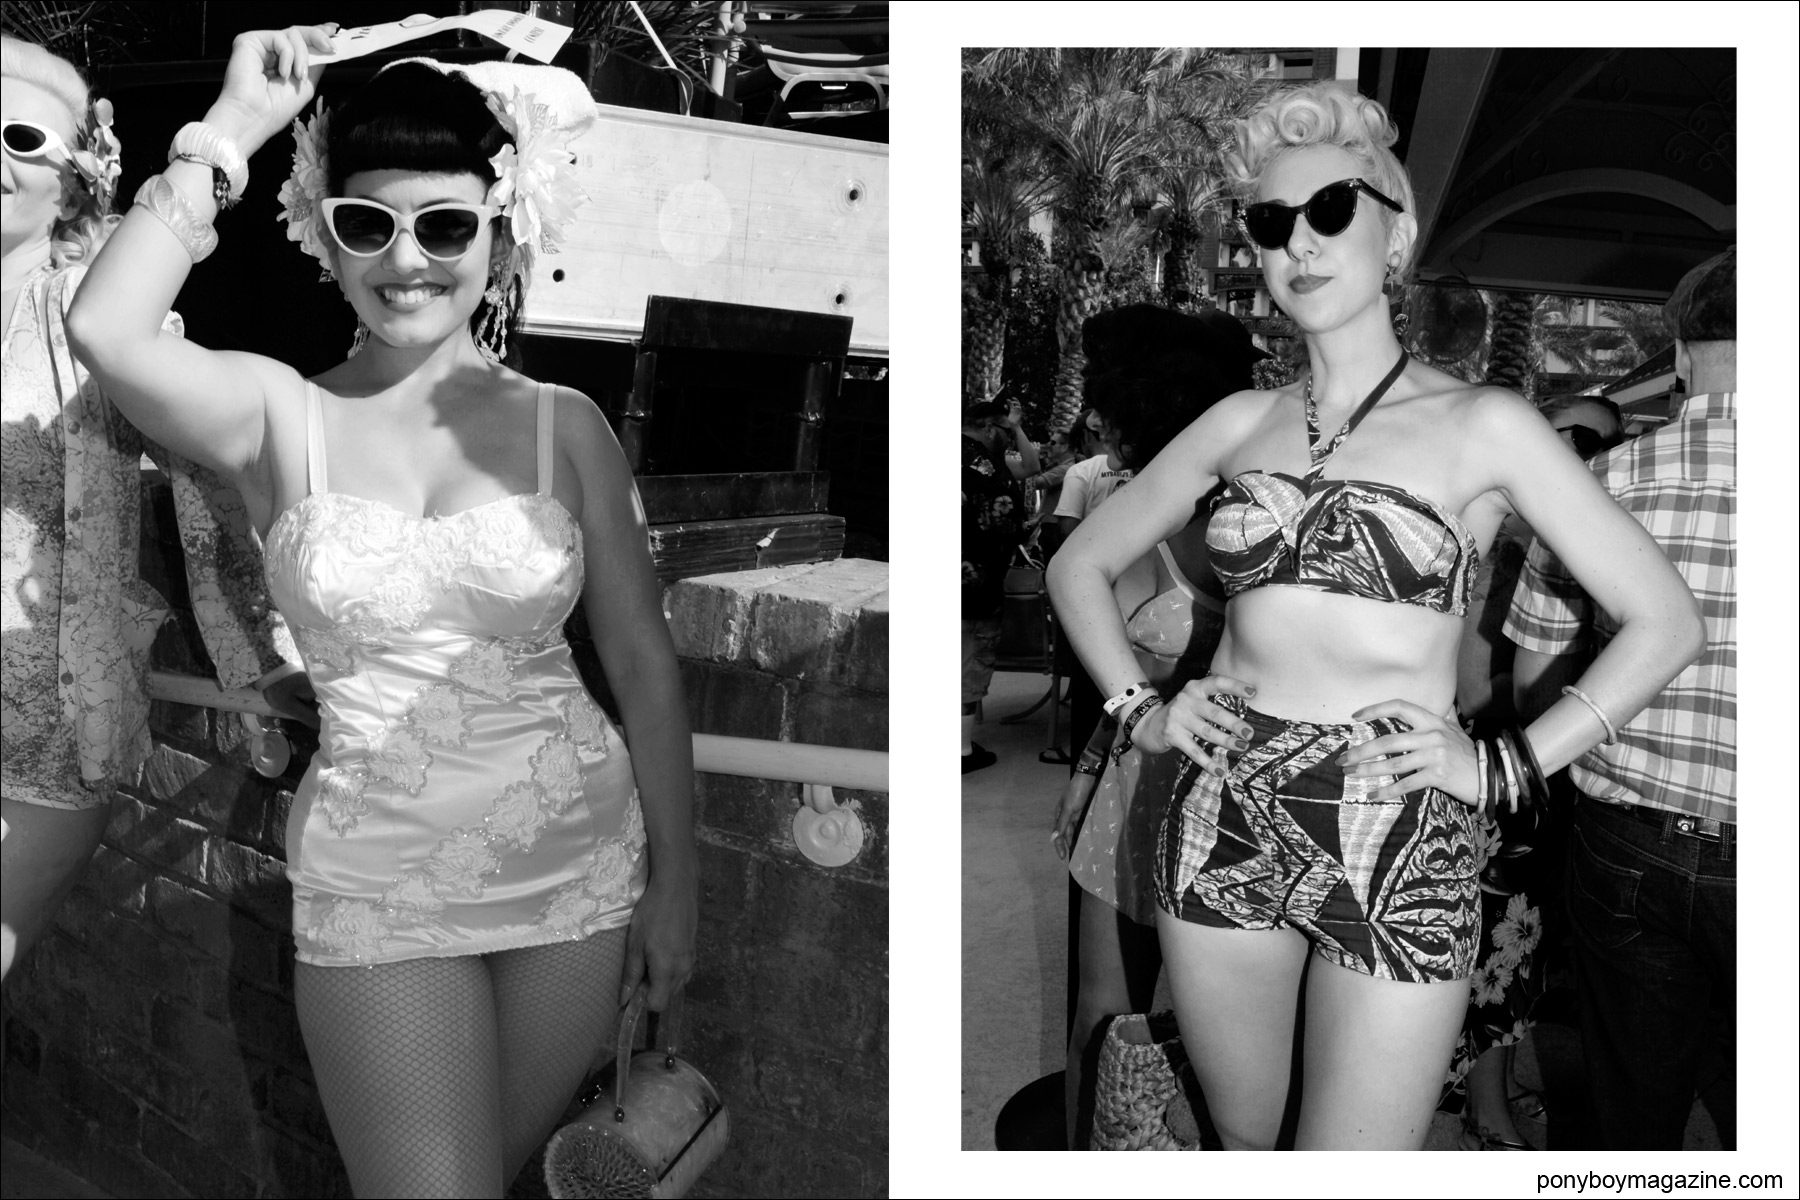 Vintage 50's women's swimsuits photographed by Ponyboy Magazine photographer Alexander Thompson at Viva Las Vegas pool party.